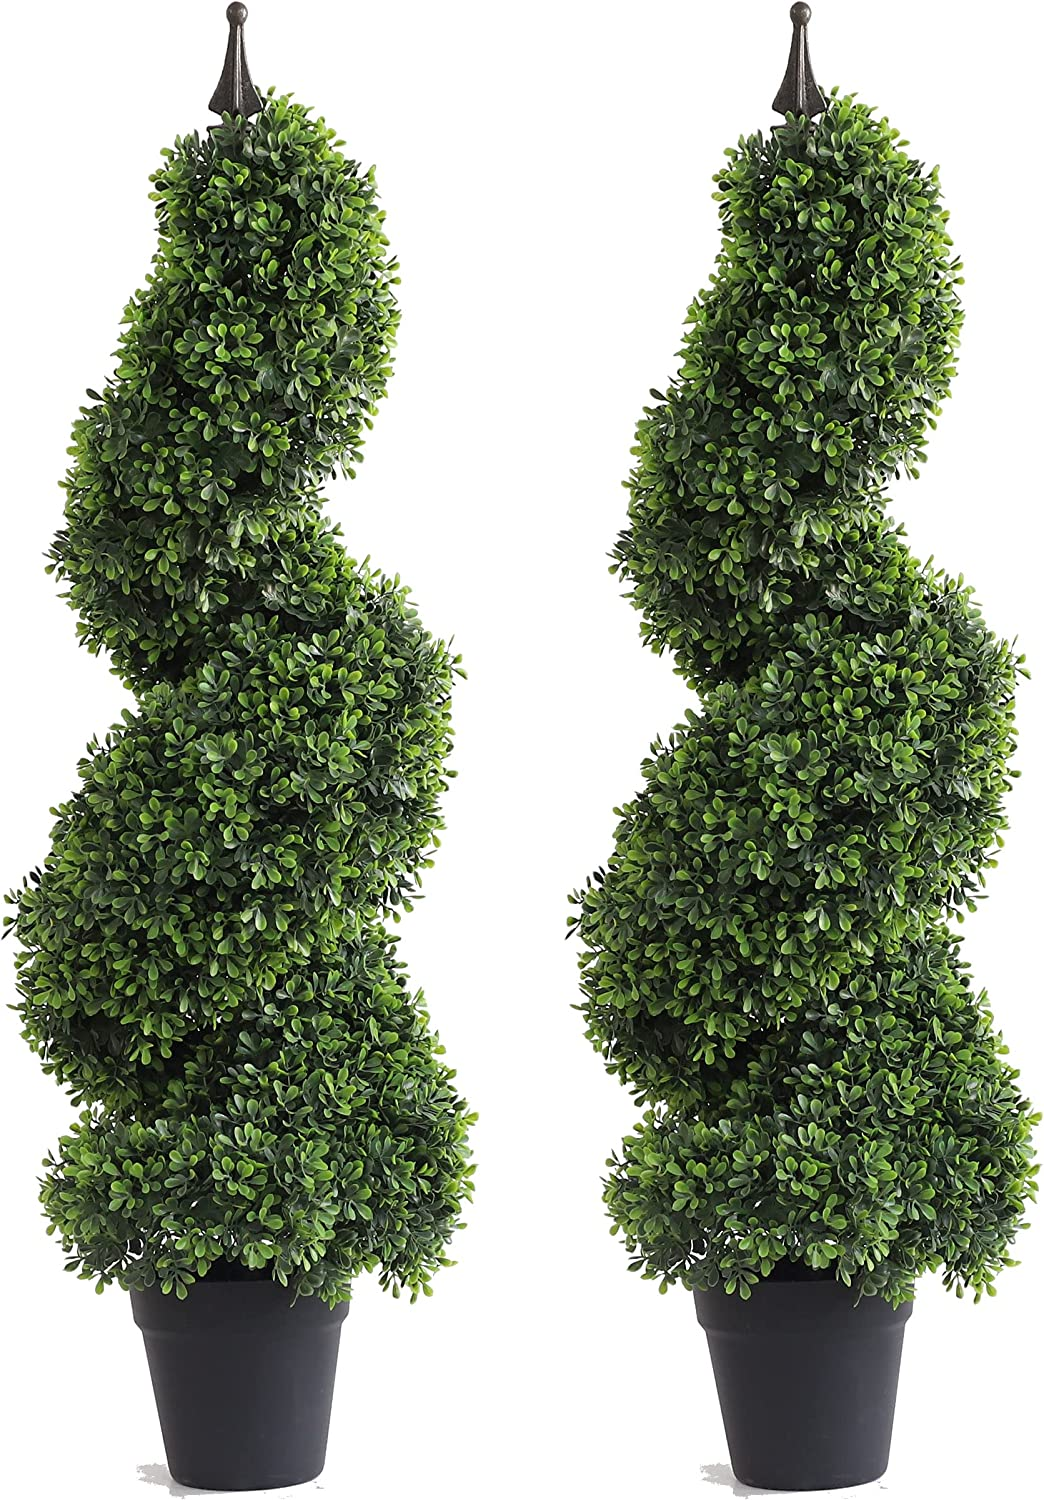 3ft Artificial Spiral Boxwood Topiary Faux Artifici Miami Mall Tree Outlet sale feature